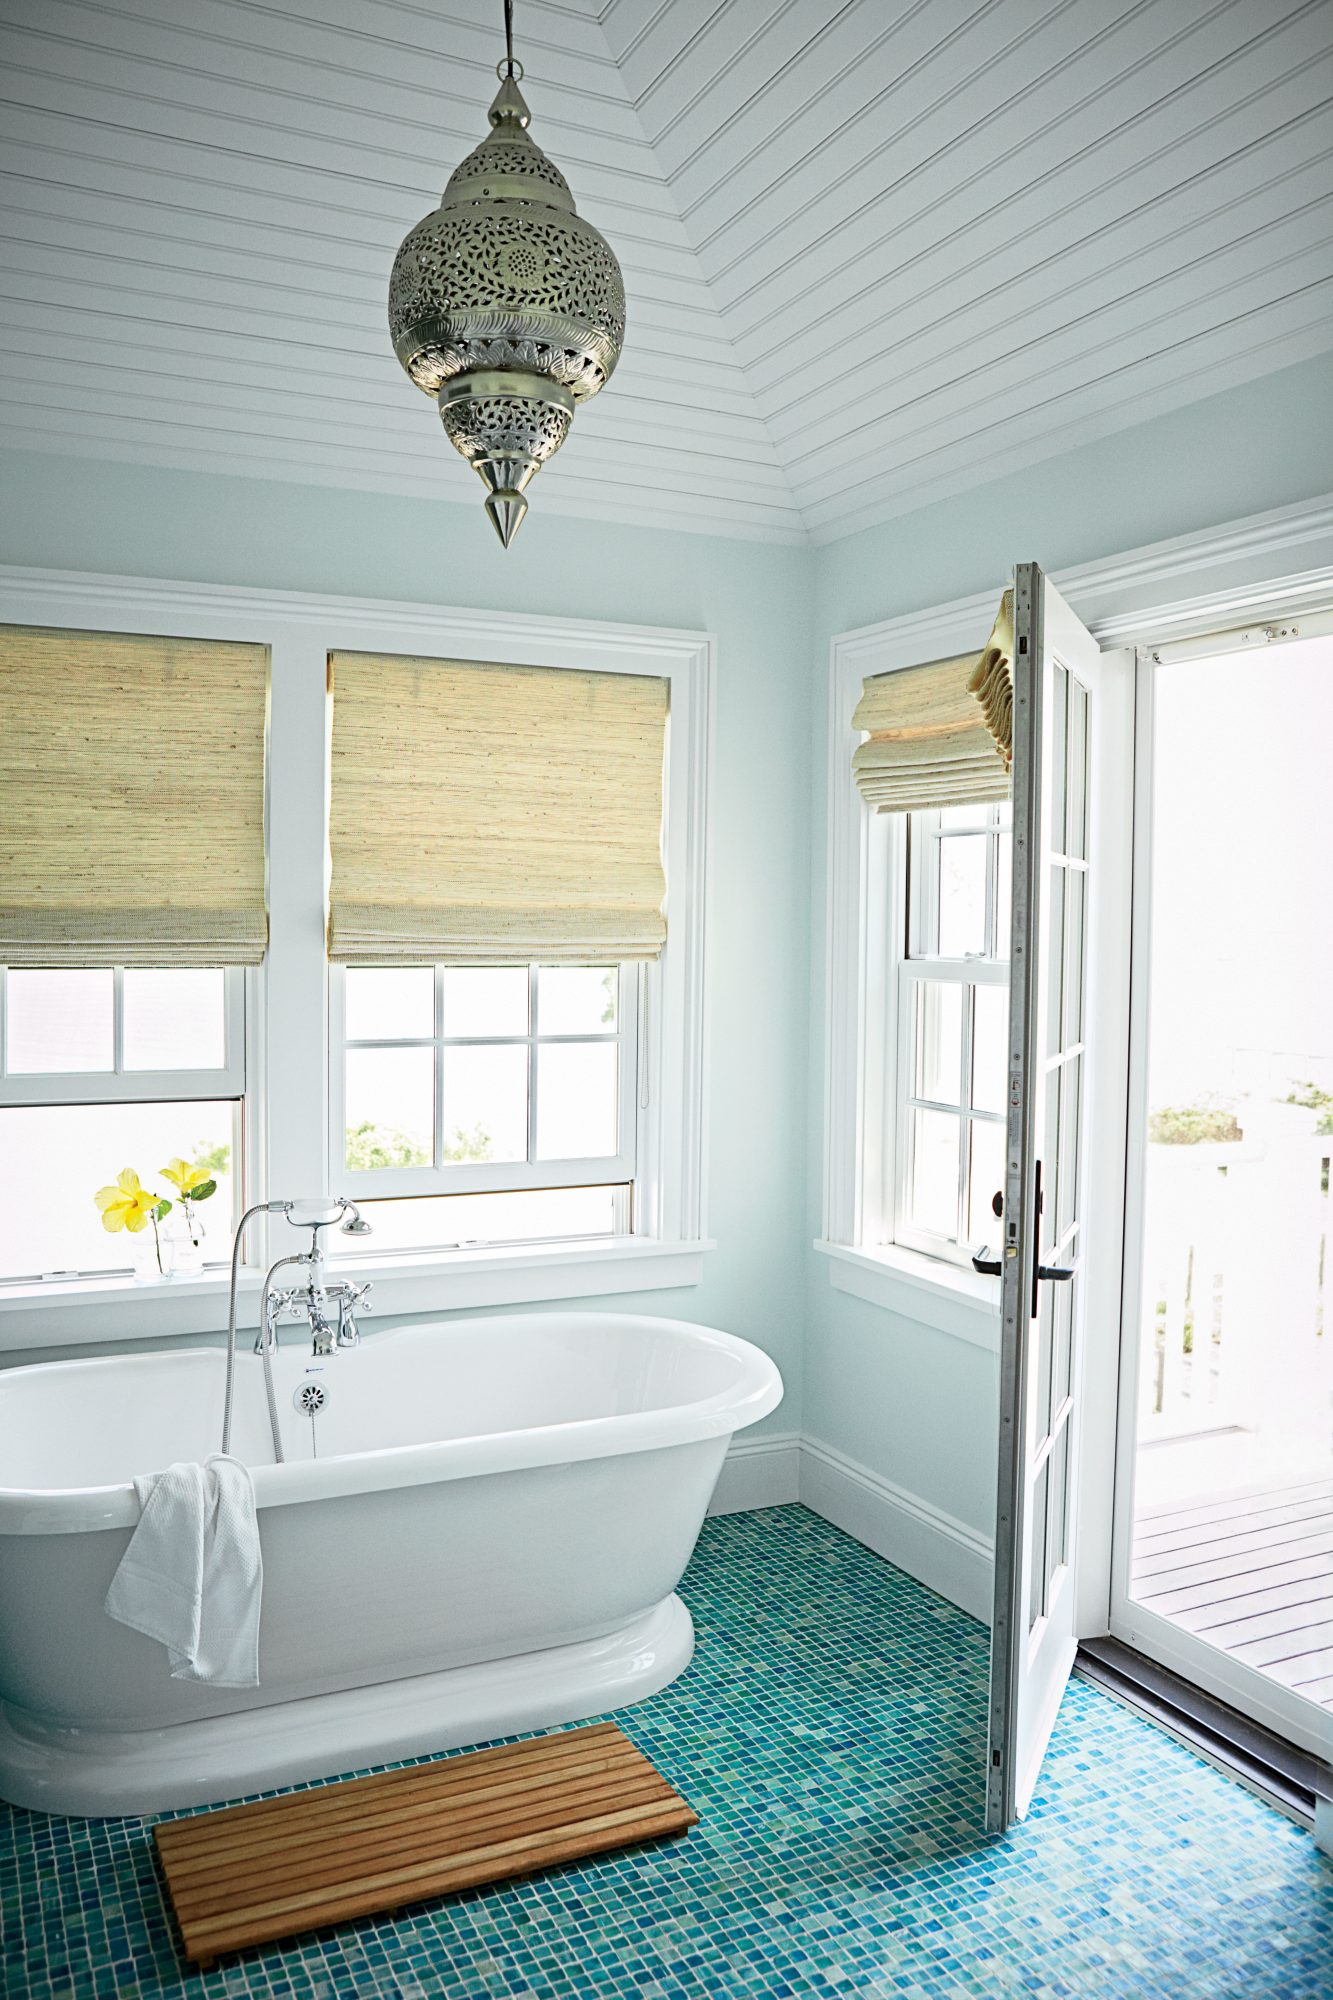 A gorgeous tile floor in a spectrum of ocean-going blues and greens takes center stage in this Long Island master bath.